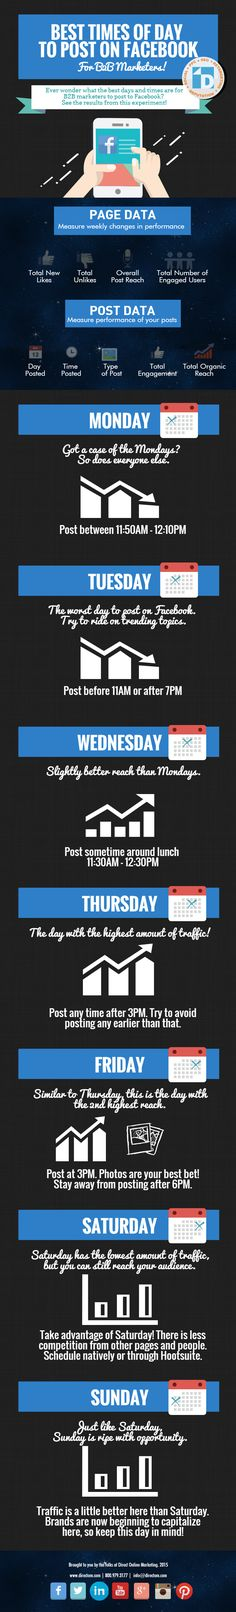 Social Media Infographic: The Best Times of Day to Post on Facebook for B2B…